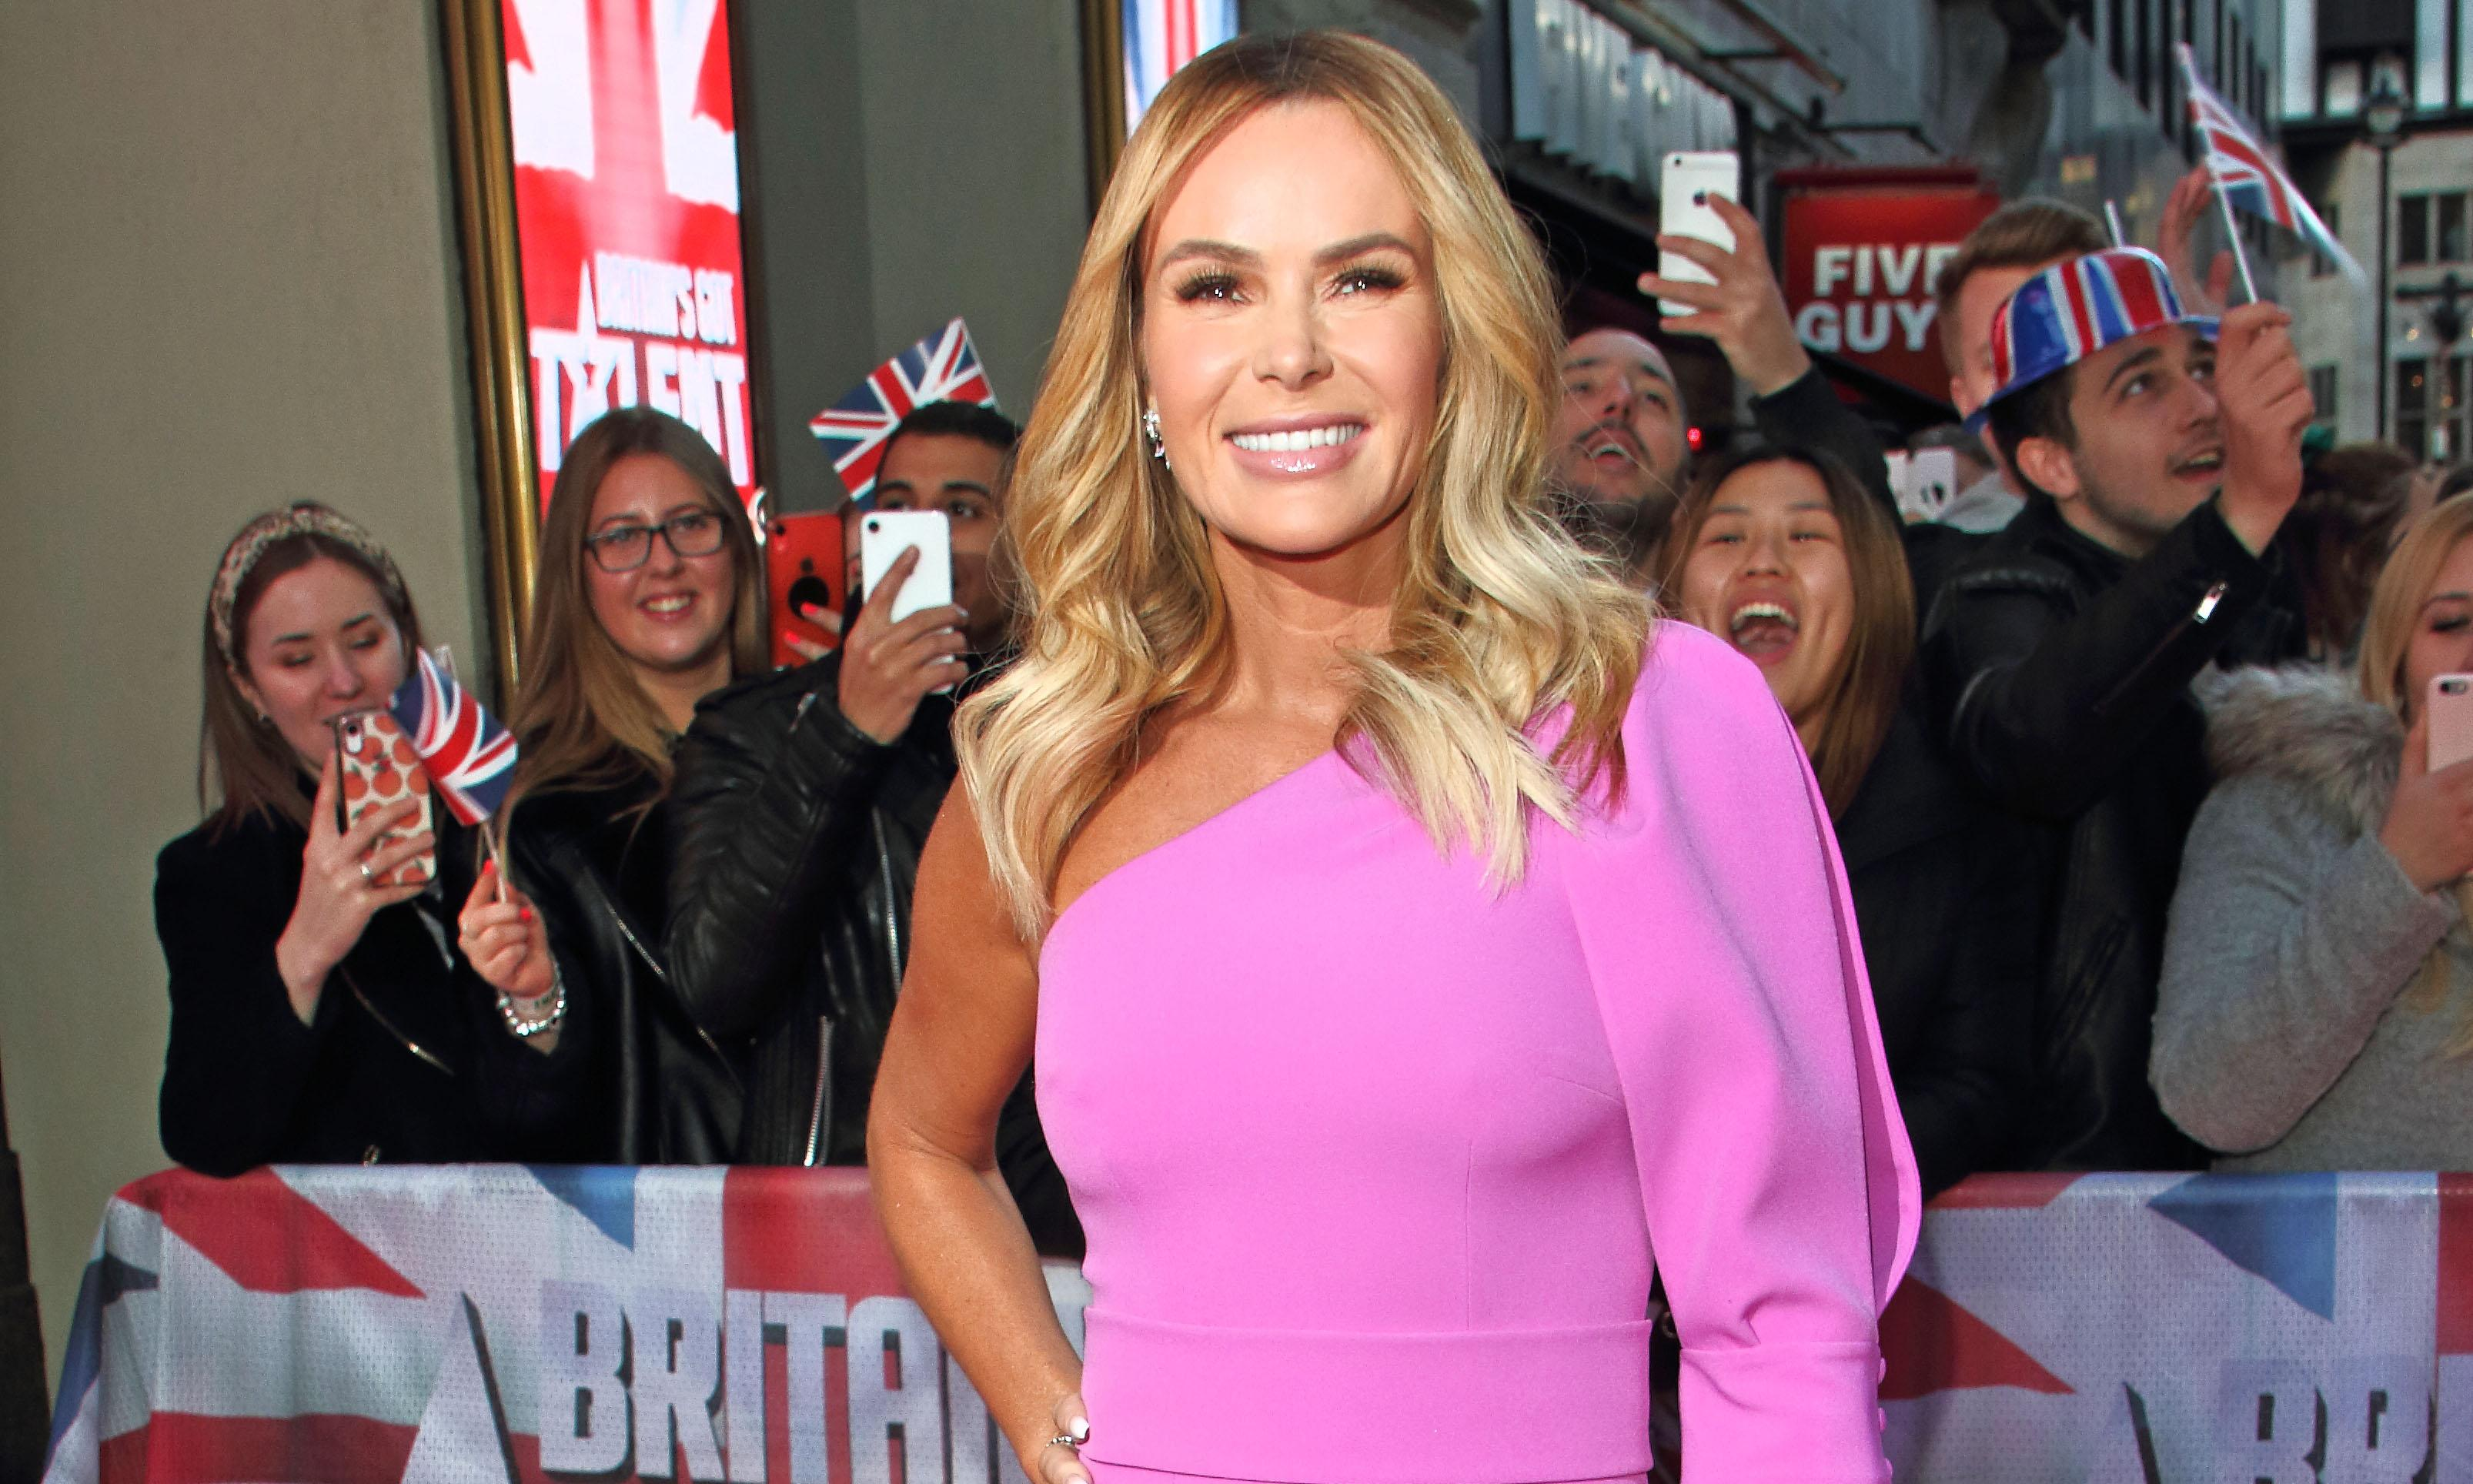 Amanda Holden gives fans first peek at Sheridan Smith duet